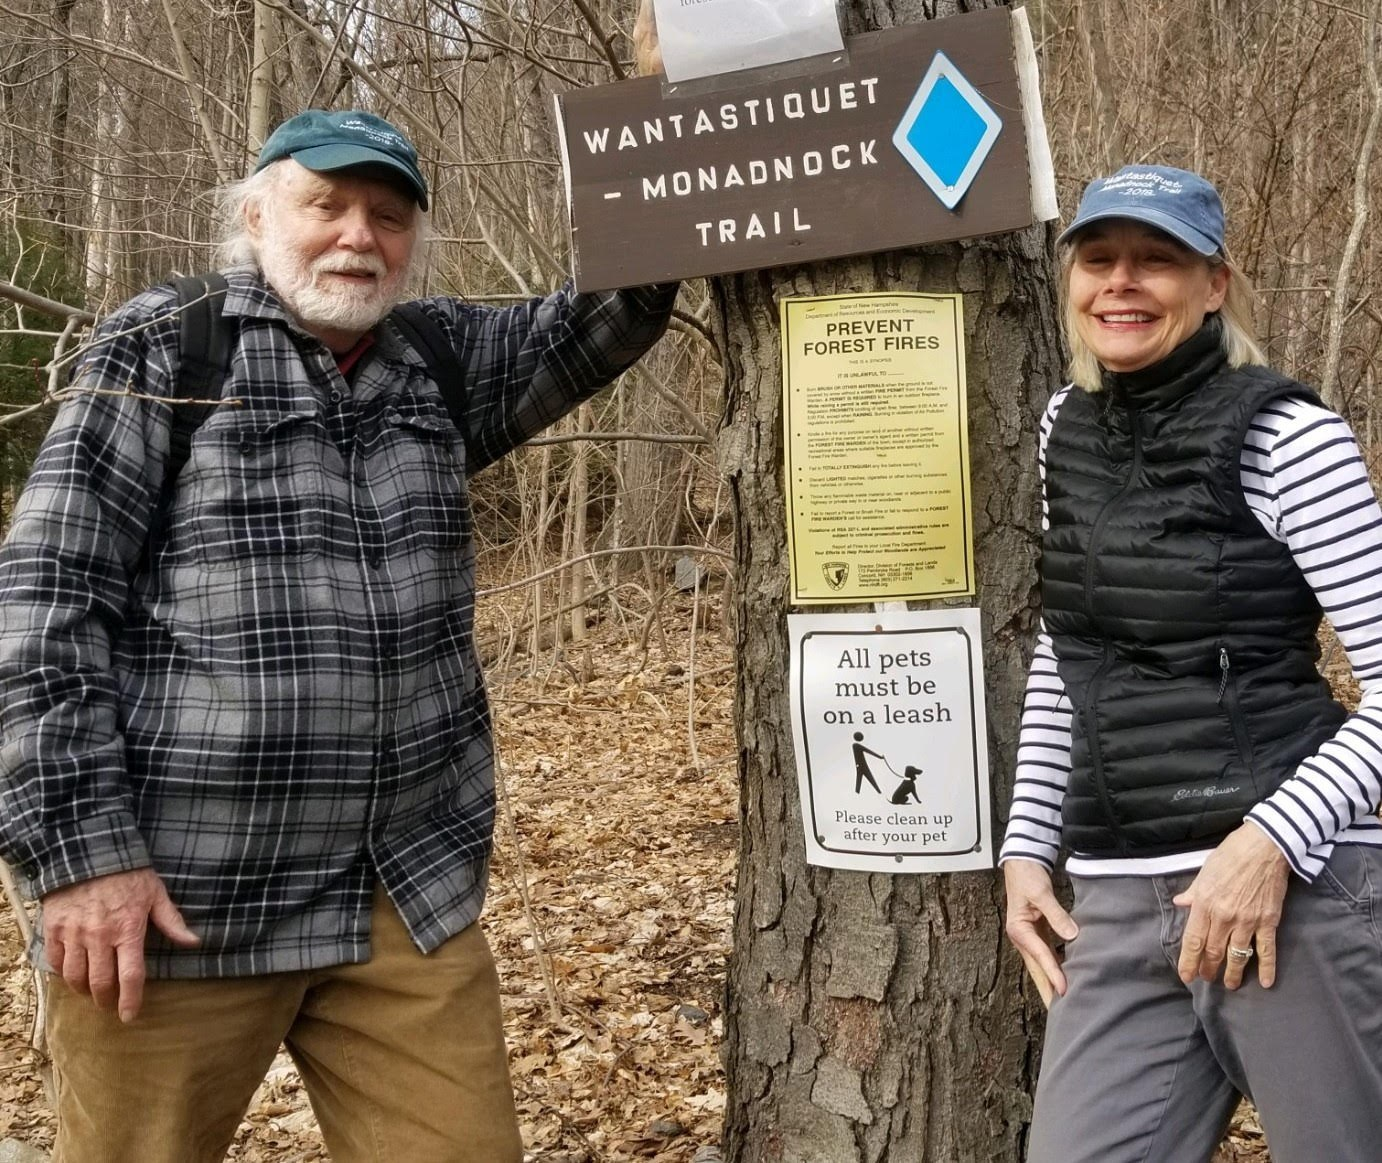 At the Trail Head